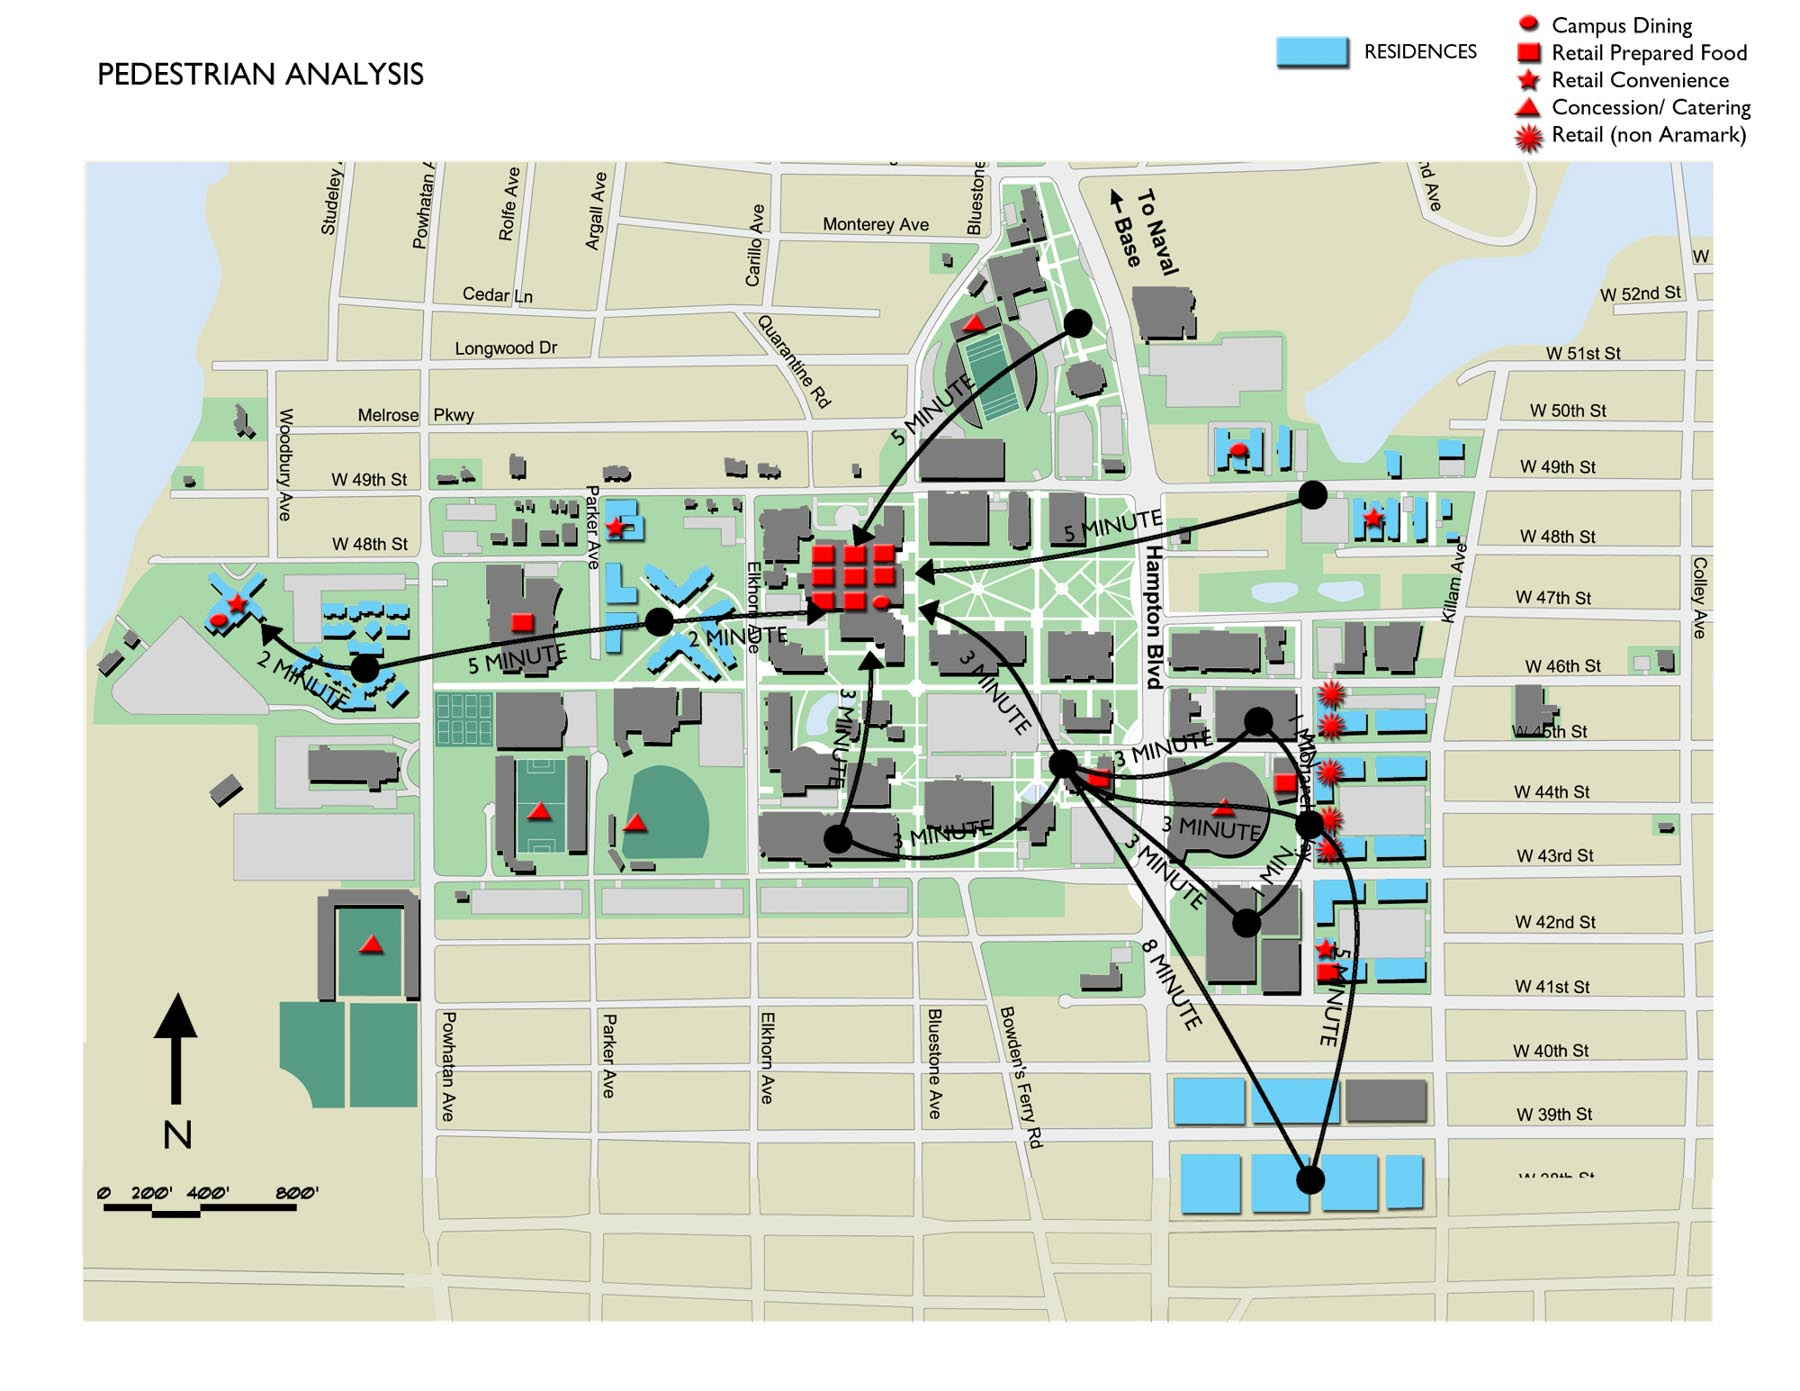 Old Dominion Campus Map.Index Of Images Portfolio Master Planning Old Dominion Campus